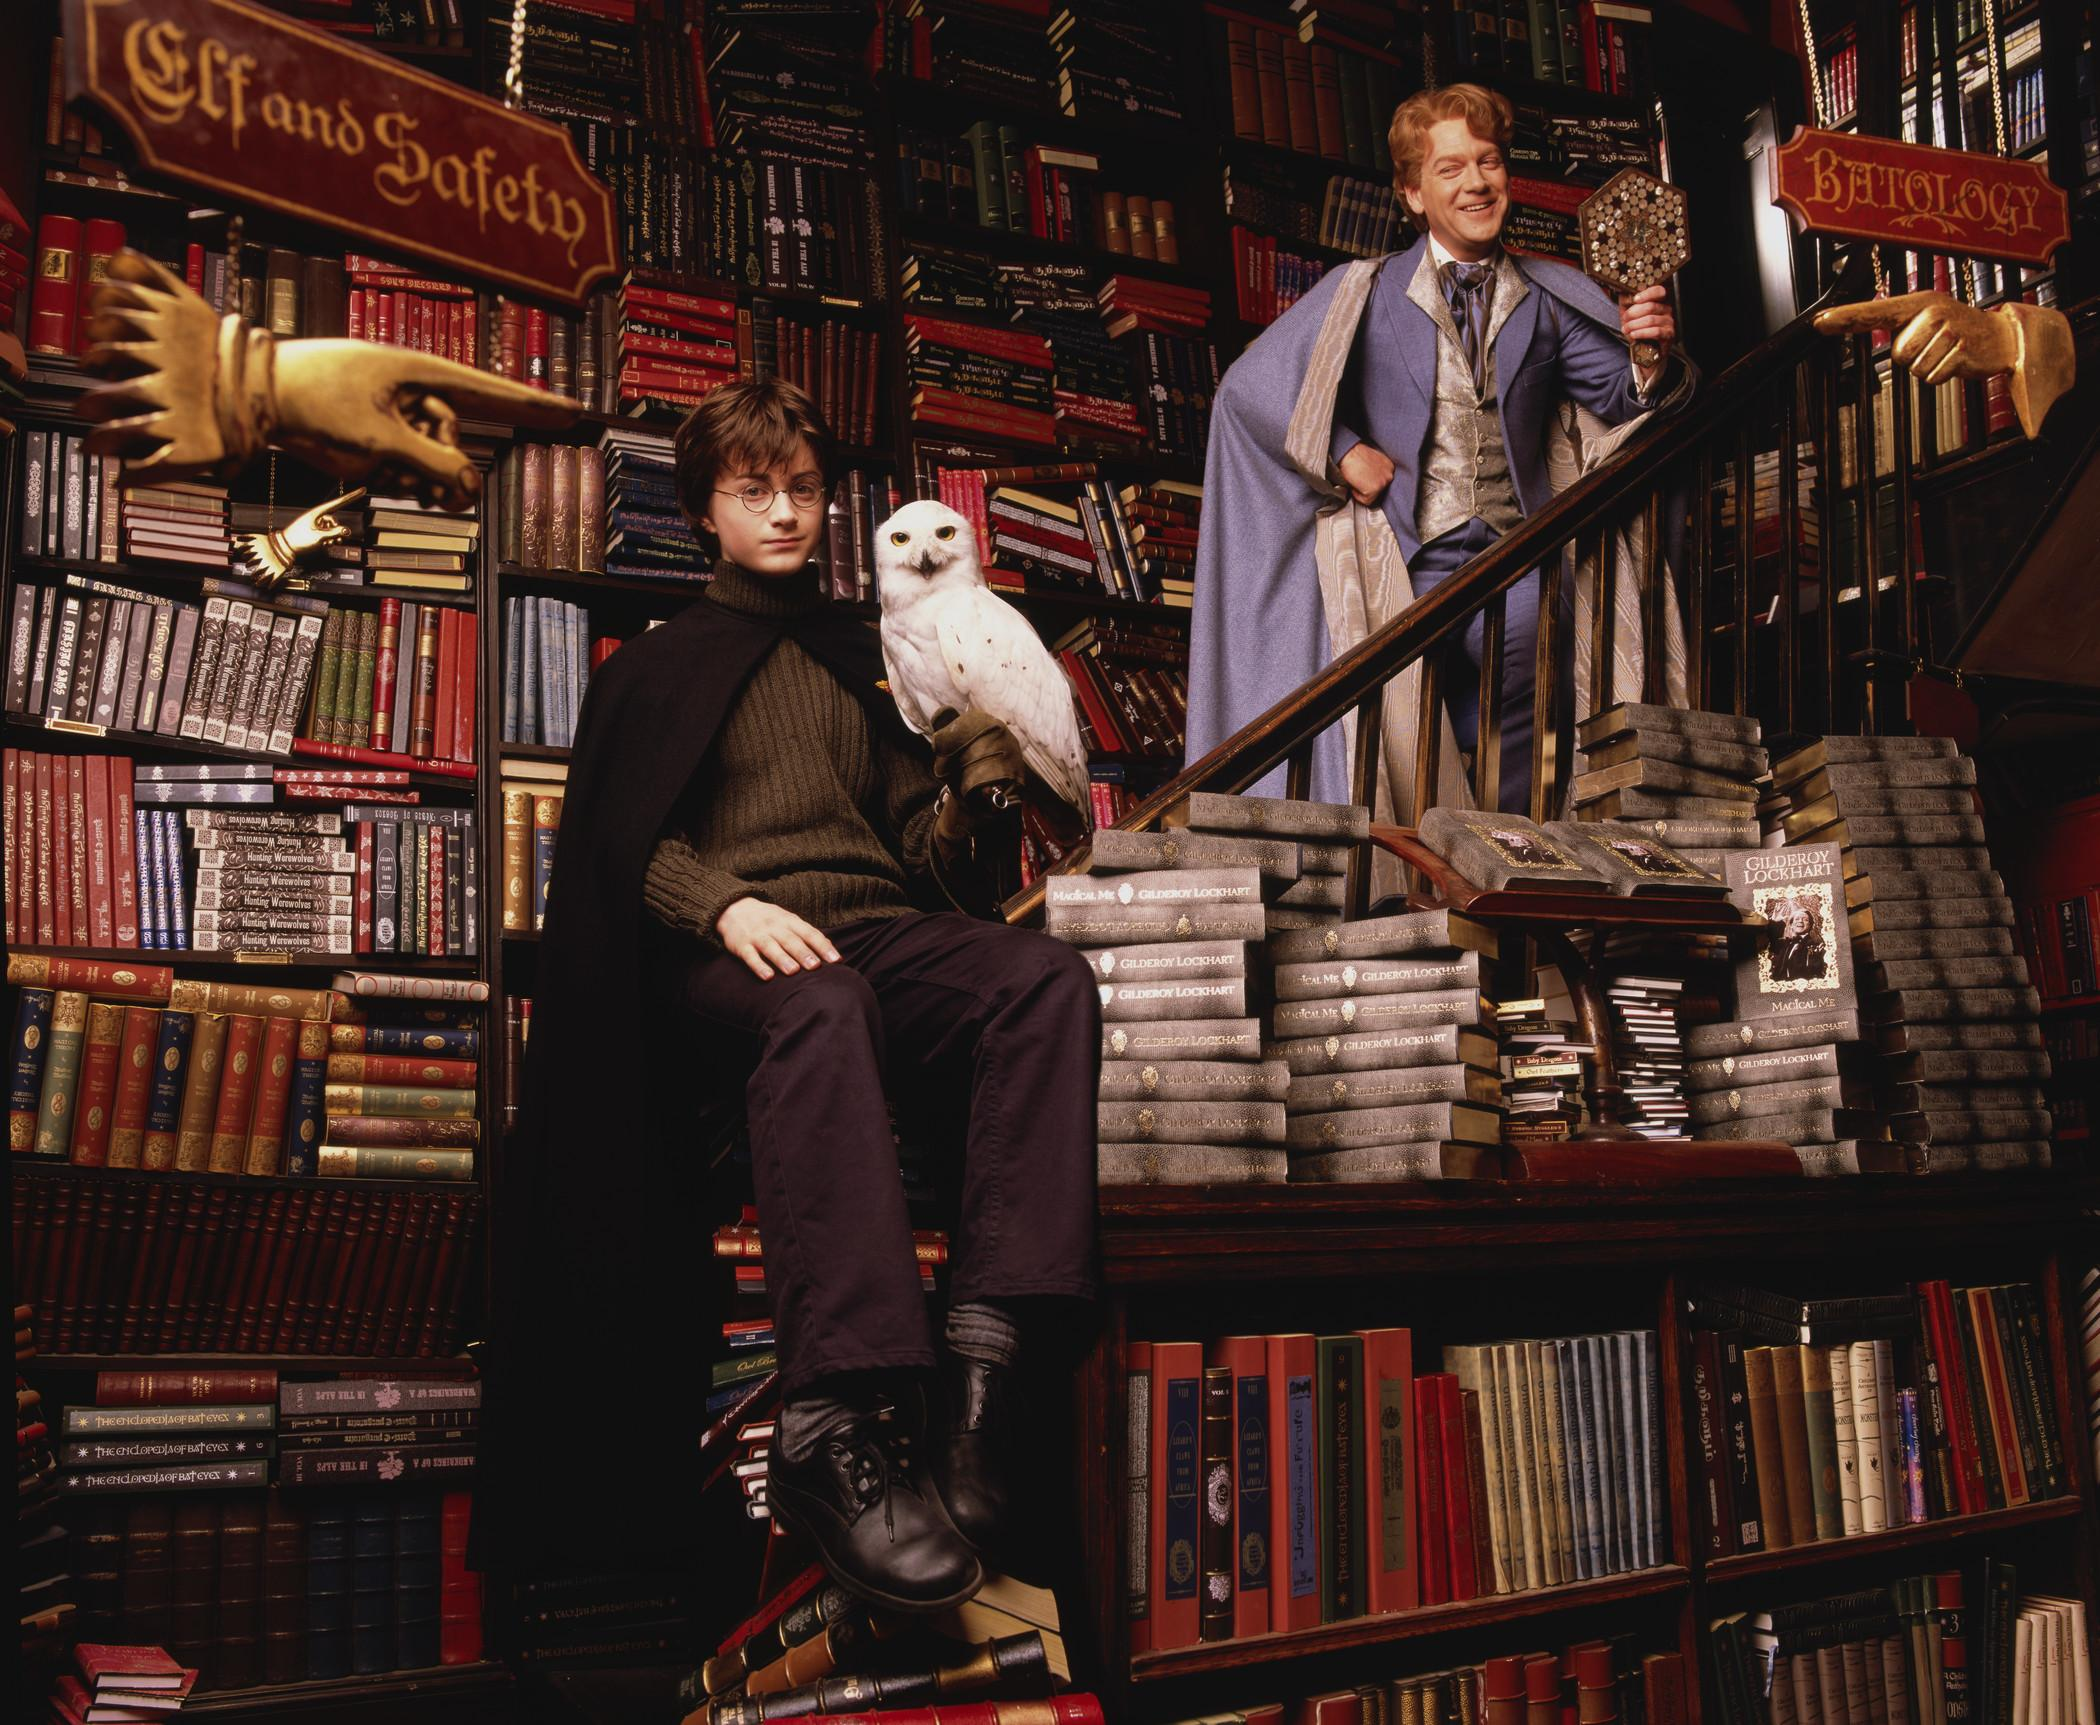 http://images4.wikia.nocookie.net/__cb20100223223441/harrypotter/images/3/35/HarryandLockhartatFlourishandBlotts.jpg